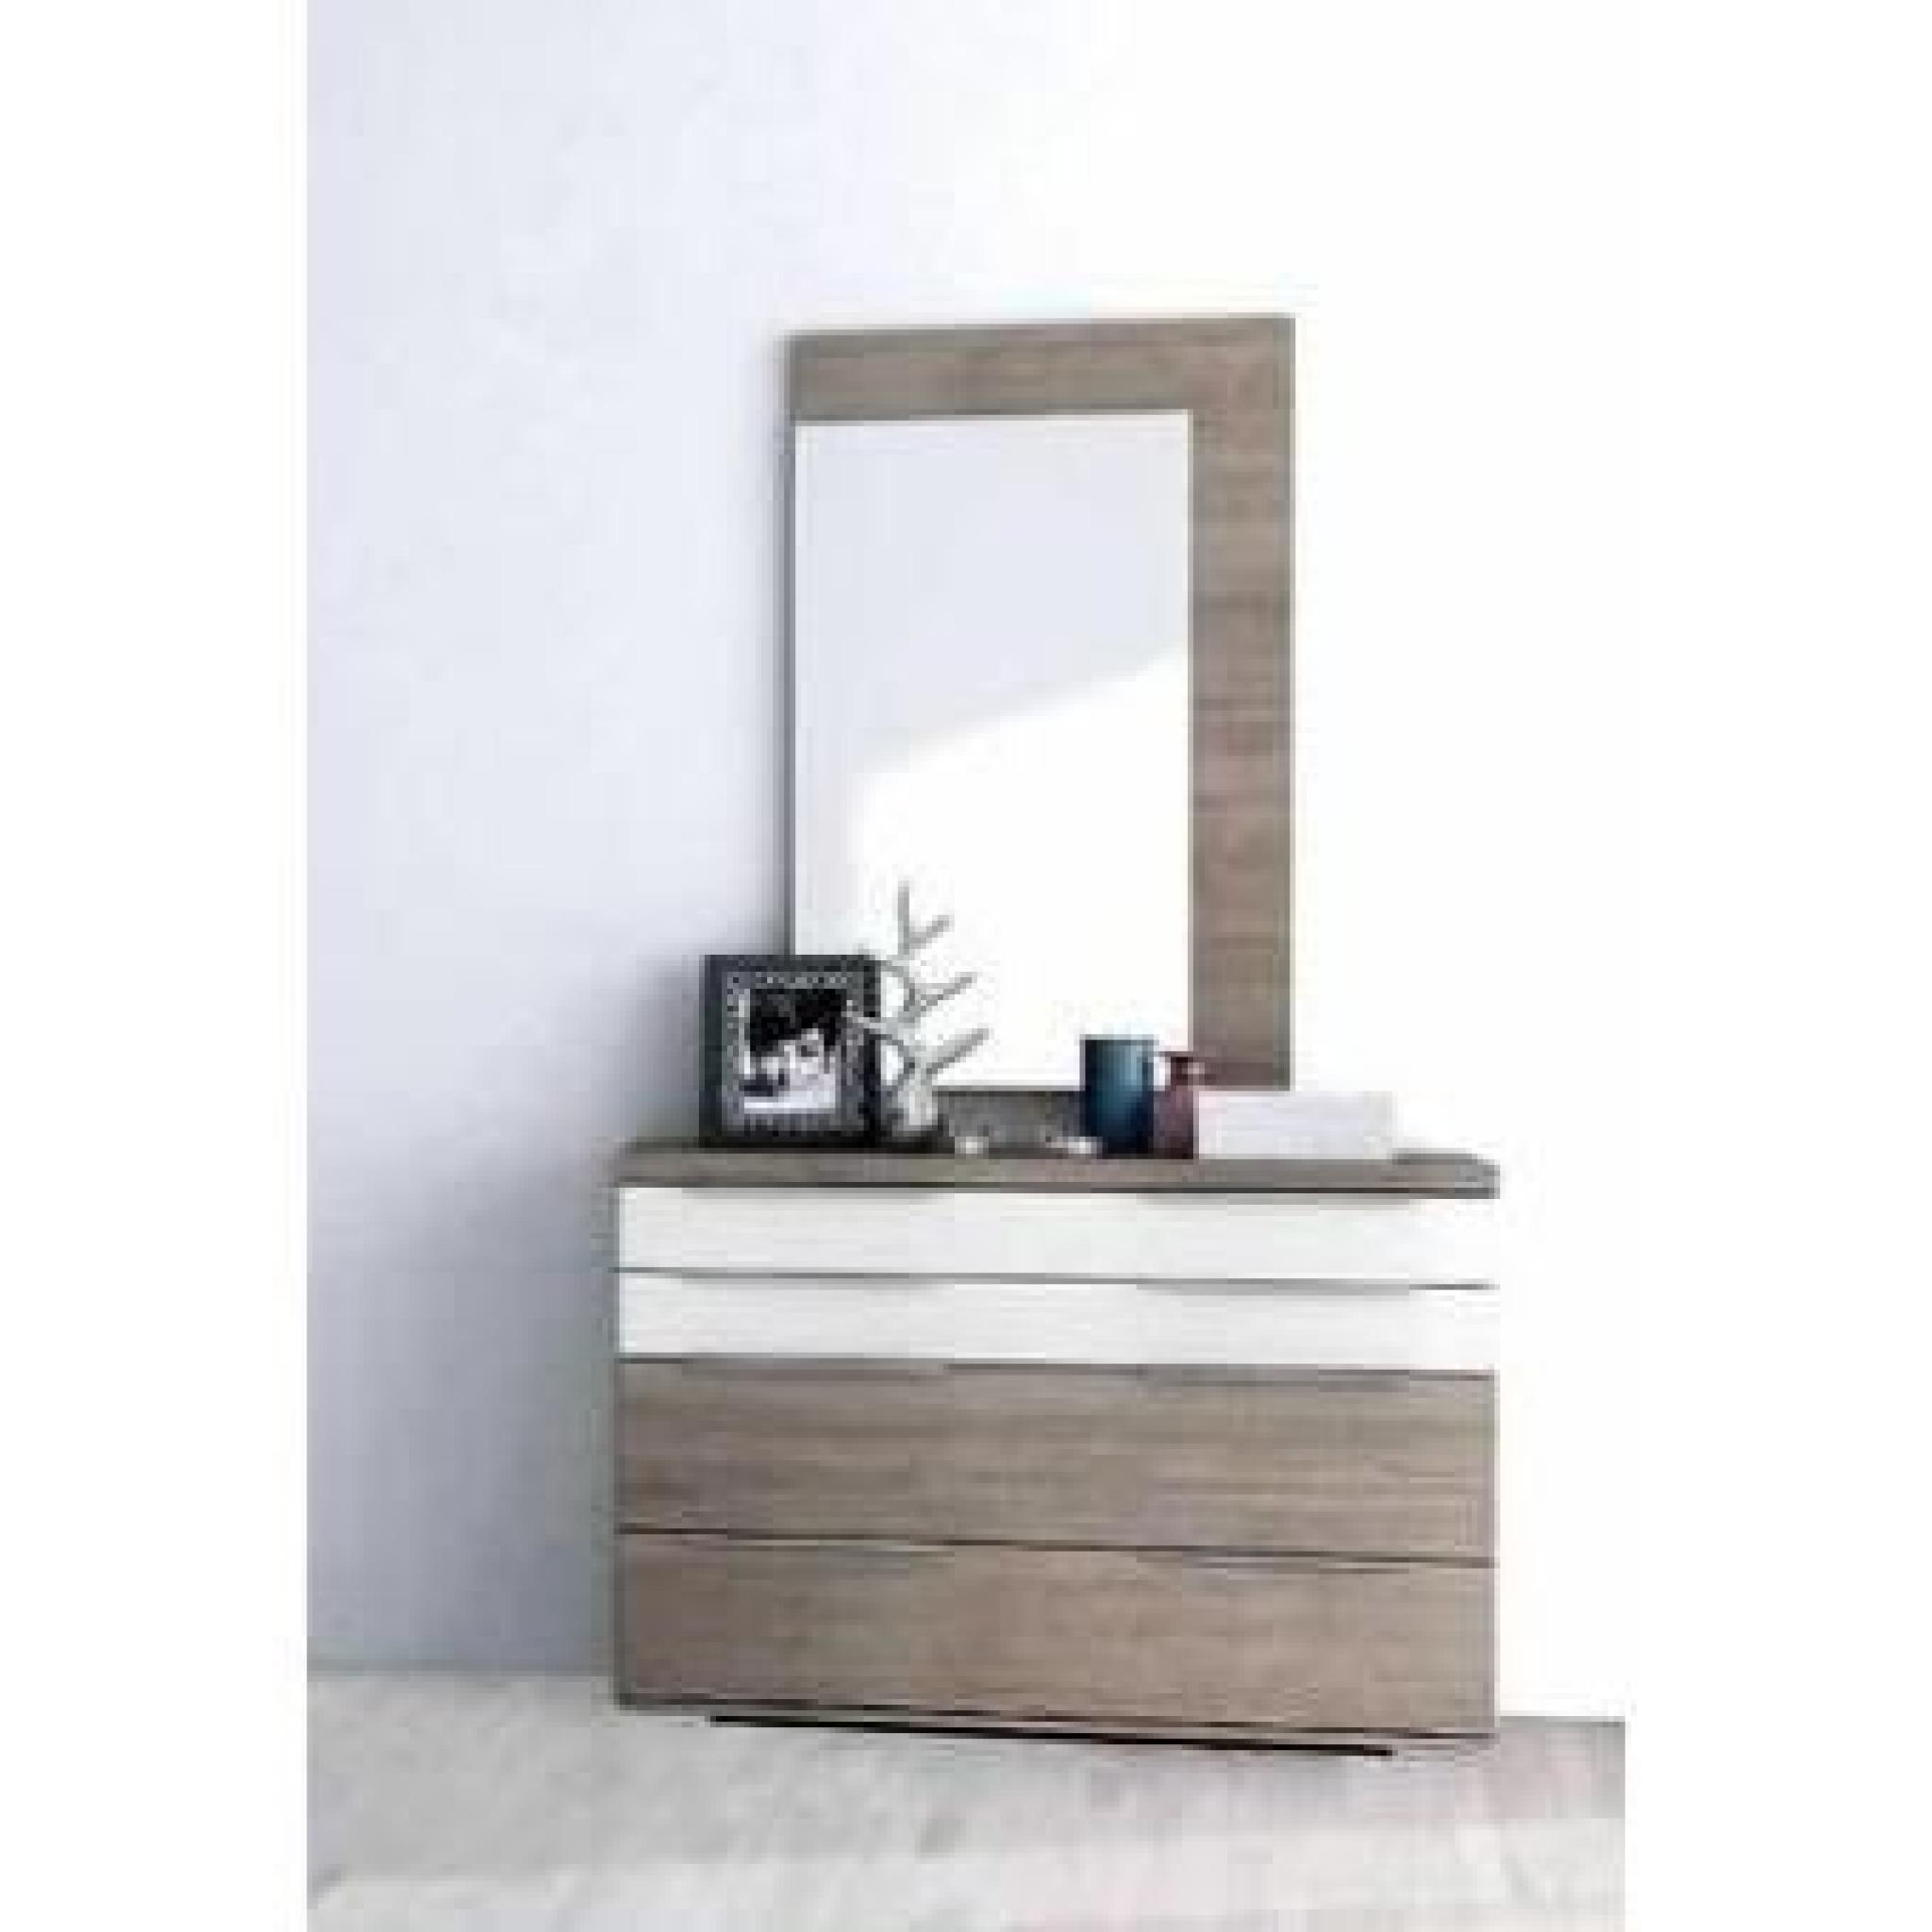 Chambre coucher contemporaine 160 x 190 cm achat vente for Chambre contemporaine design